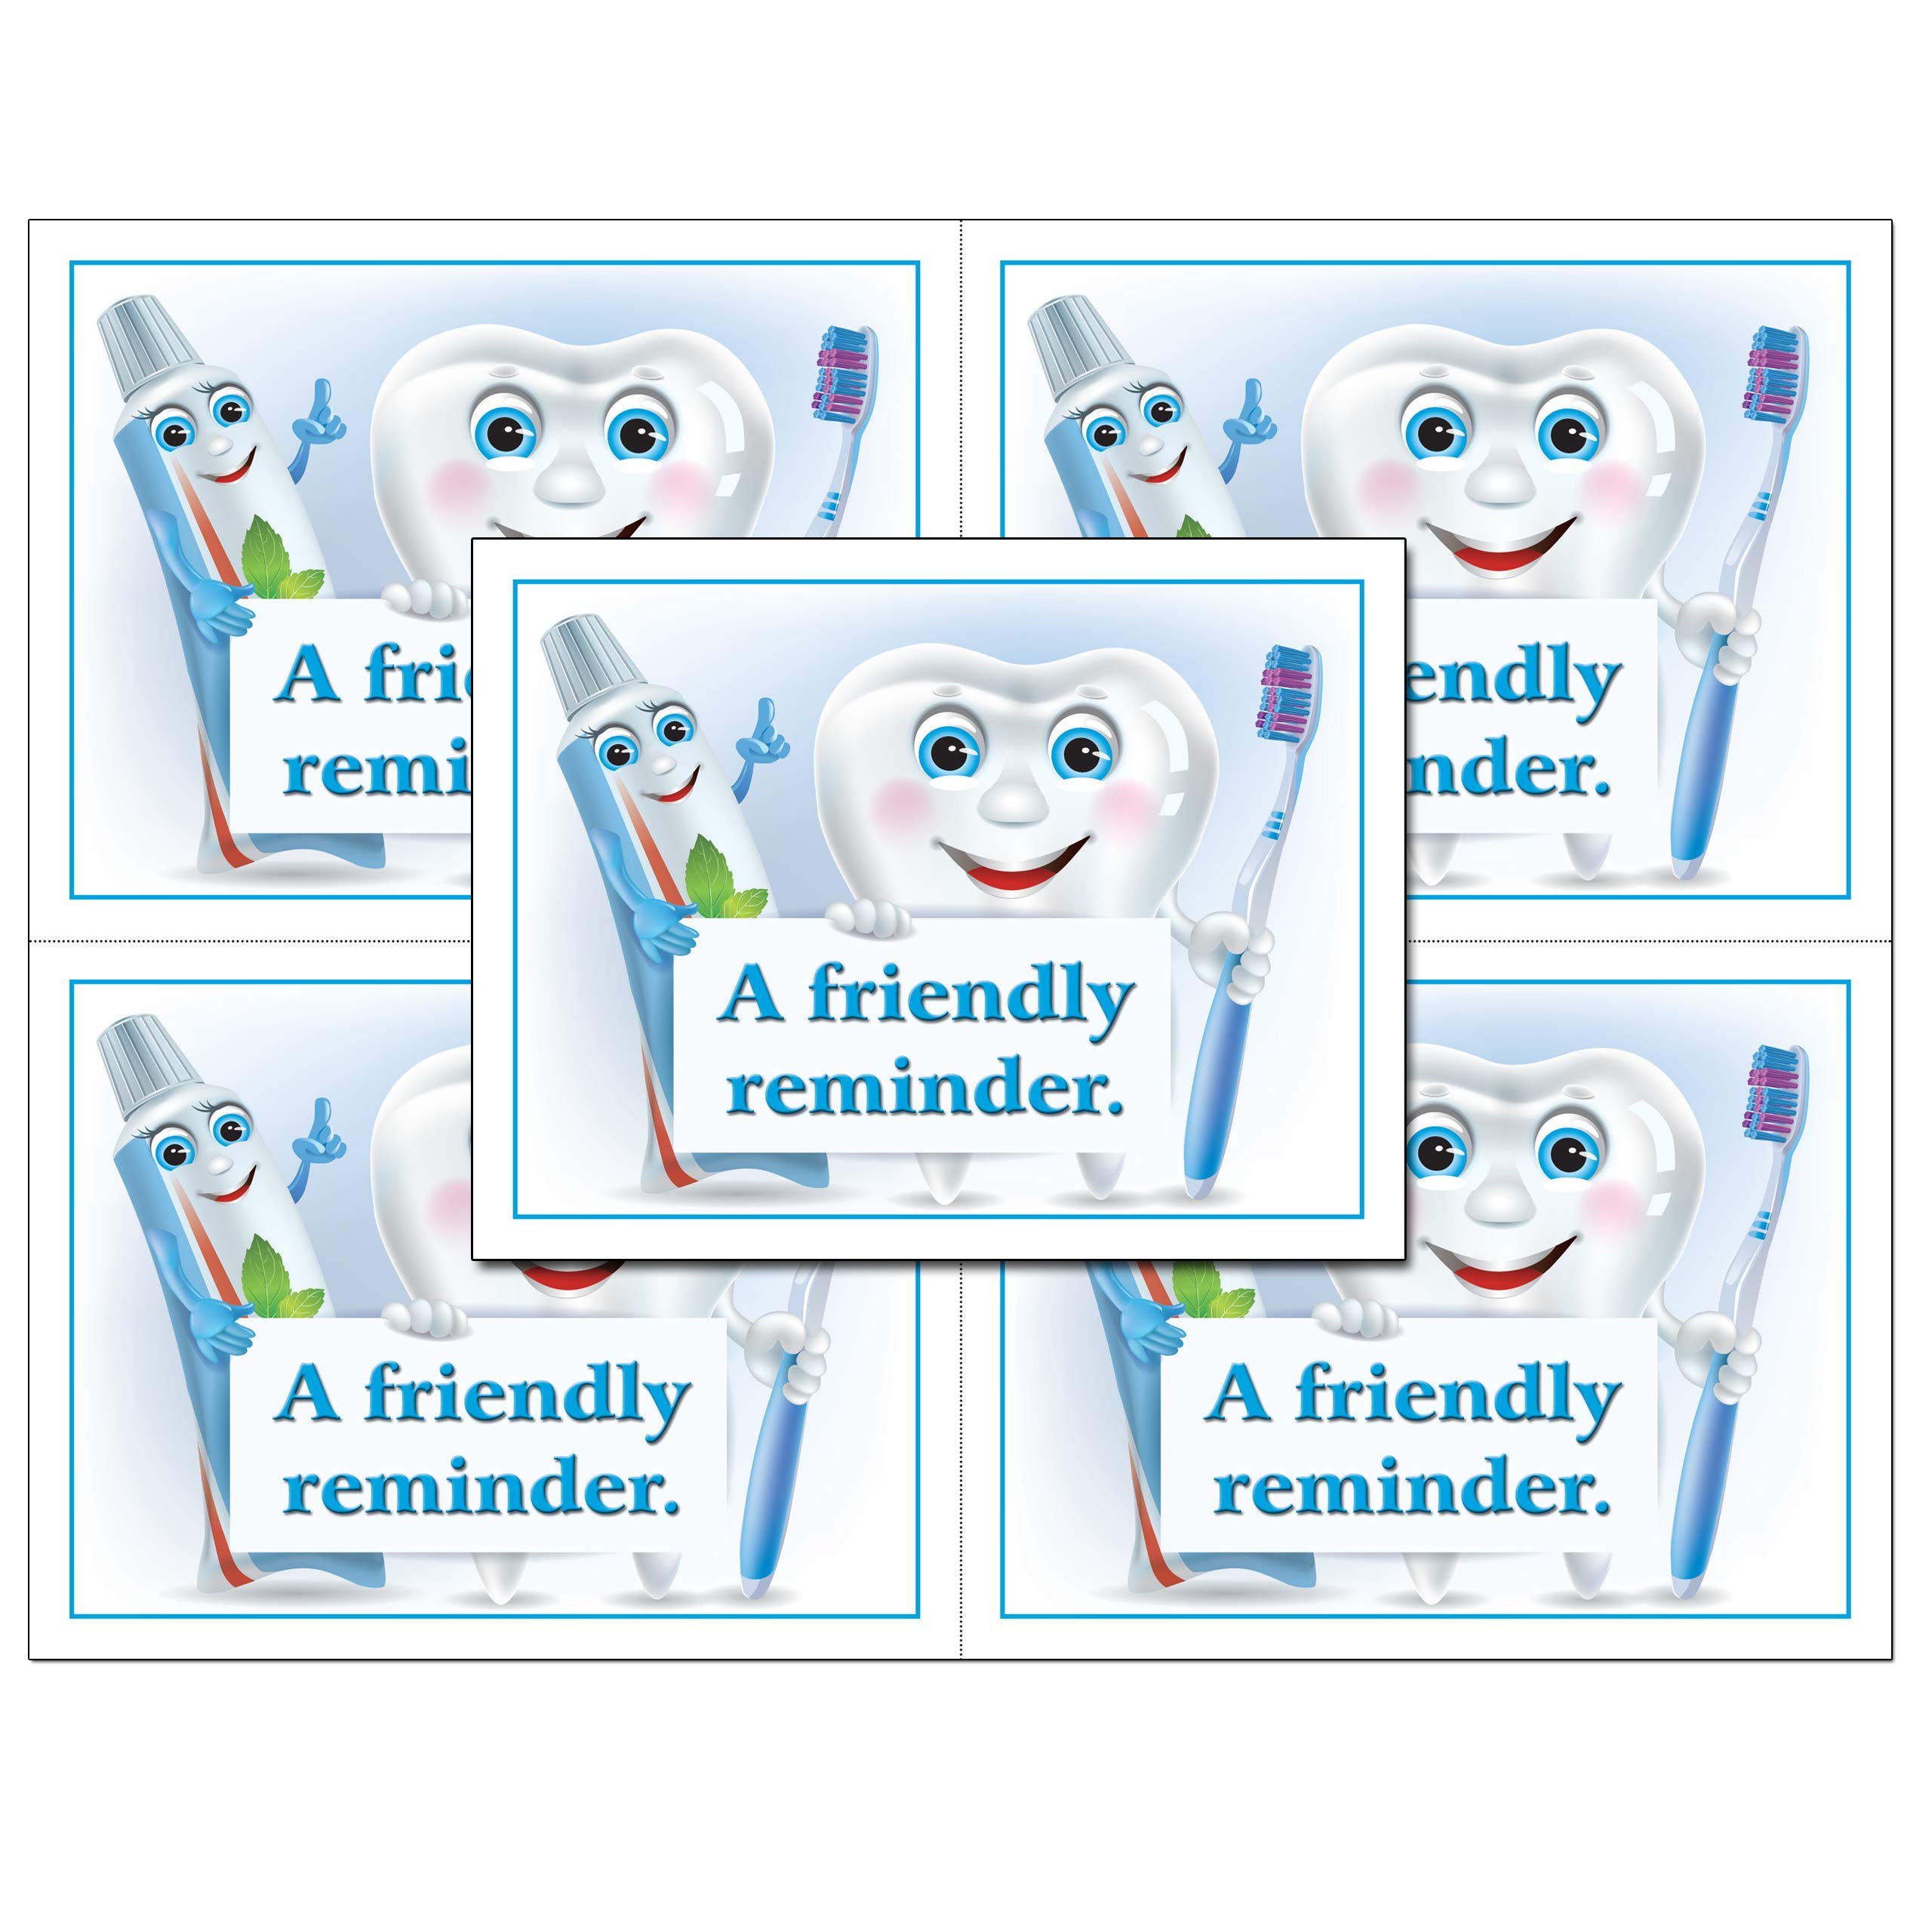 Laser Reminder Postcards, Dental Appointment Reminder Postcards. 4 Cards Perforated for Tear-Off at 4.25'' x 5.5'' on an 8.5'' x 11'' Sheet of 8 Pt Card Stock. DEN251-LZS (1000) by Custom Recall